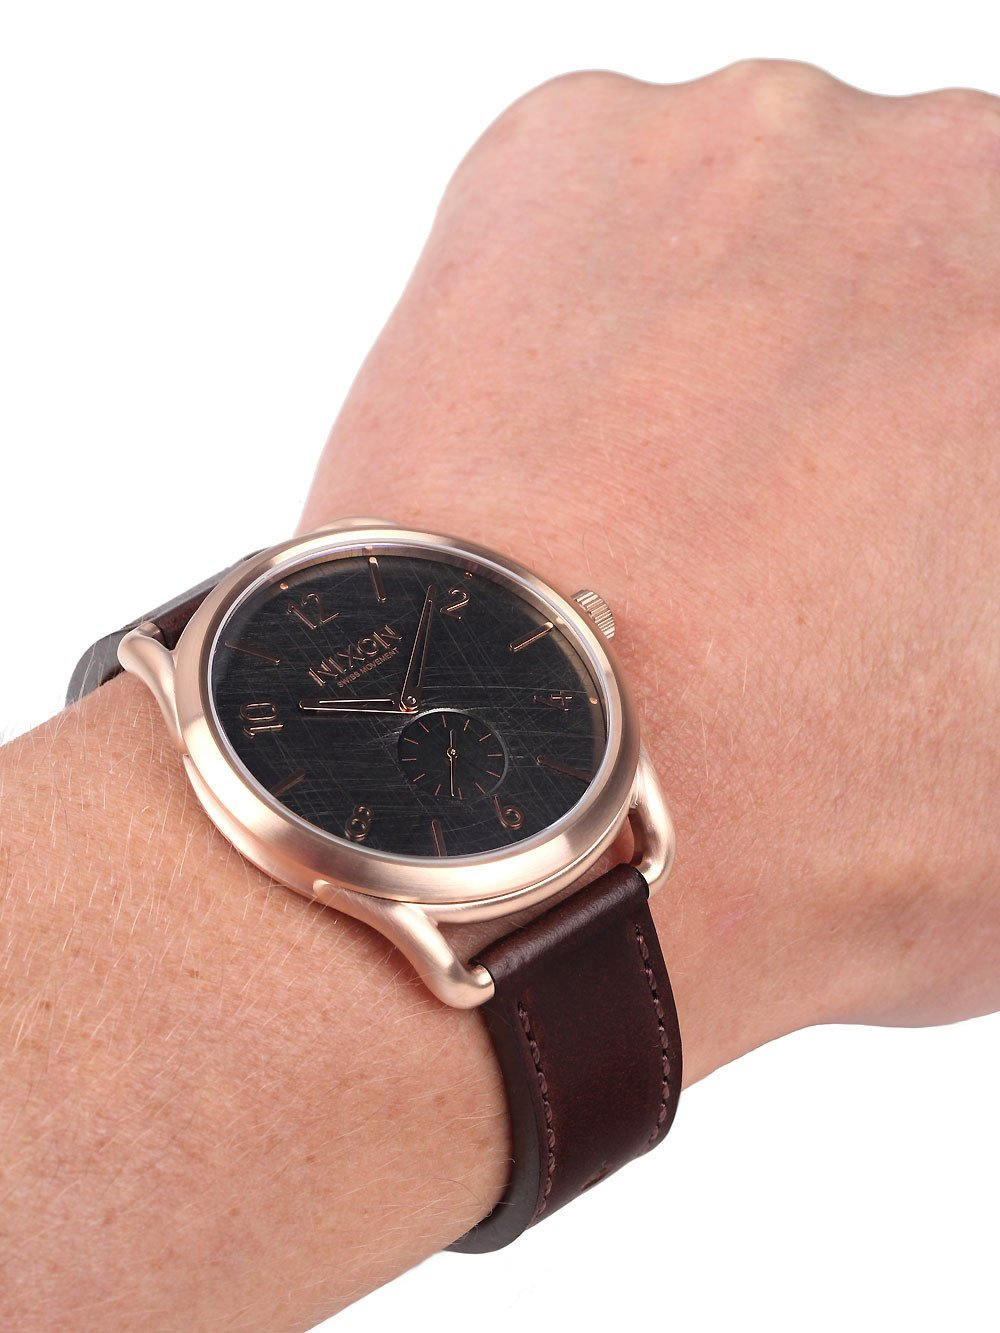 NIXON A465-1890 C45 Leather Rose Gold Brown 45mm 10ATM